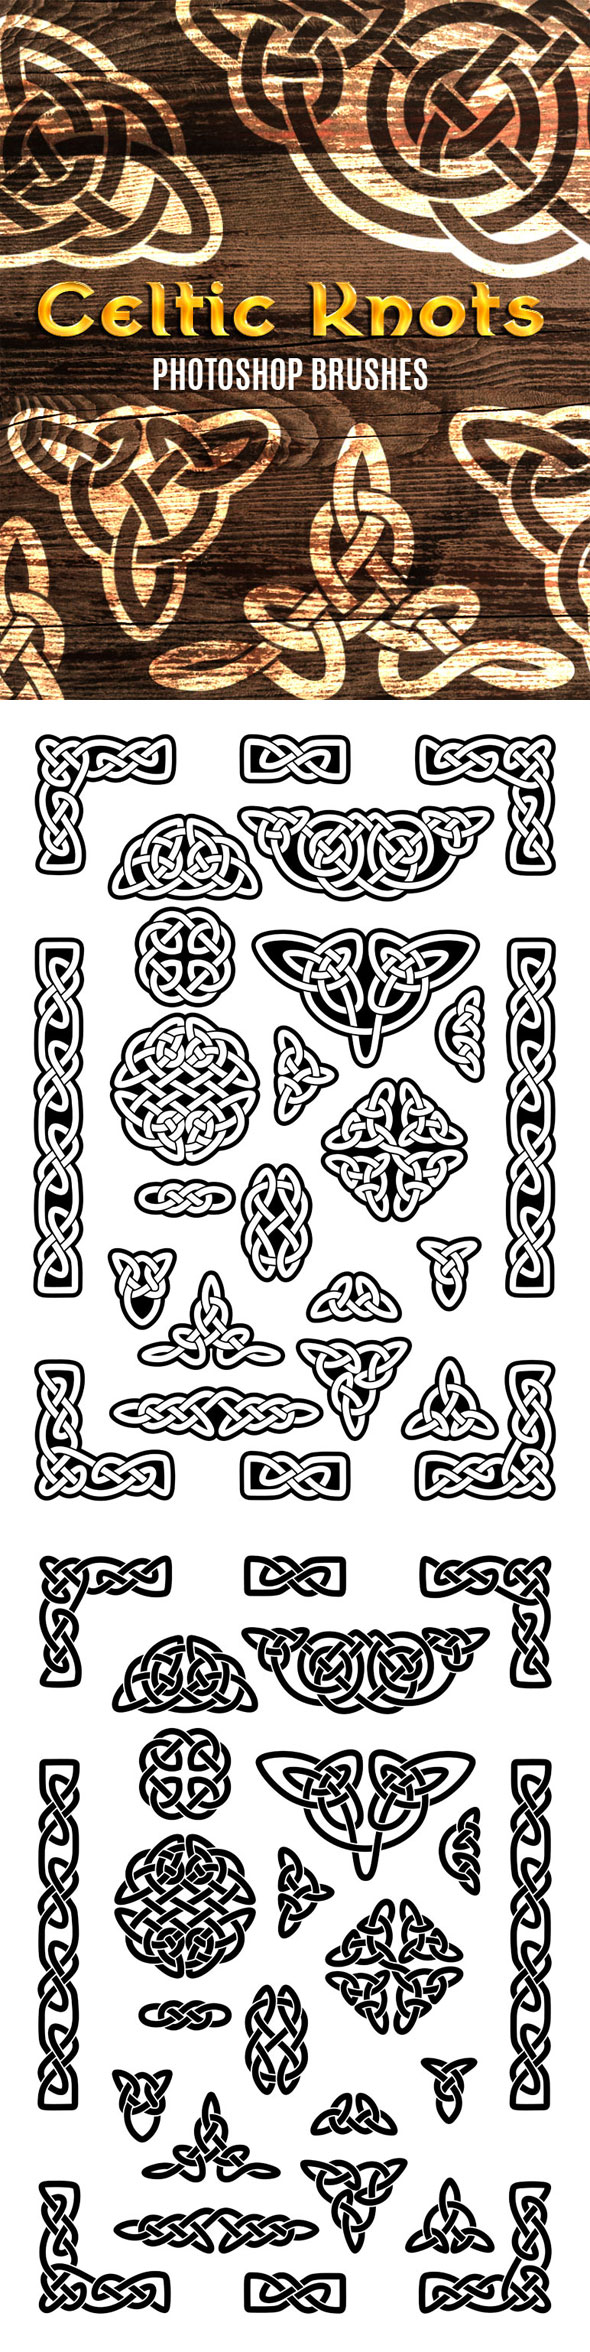 Celtic Brushes - Miscellaneous Brushes